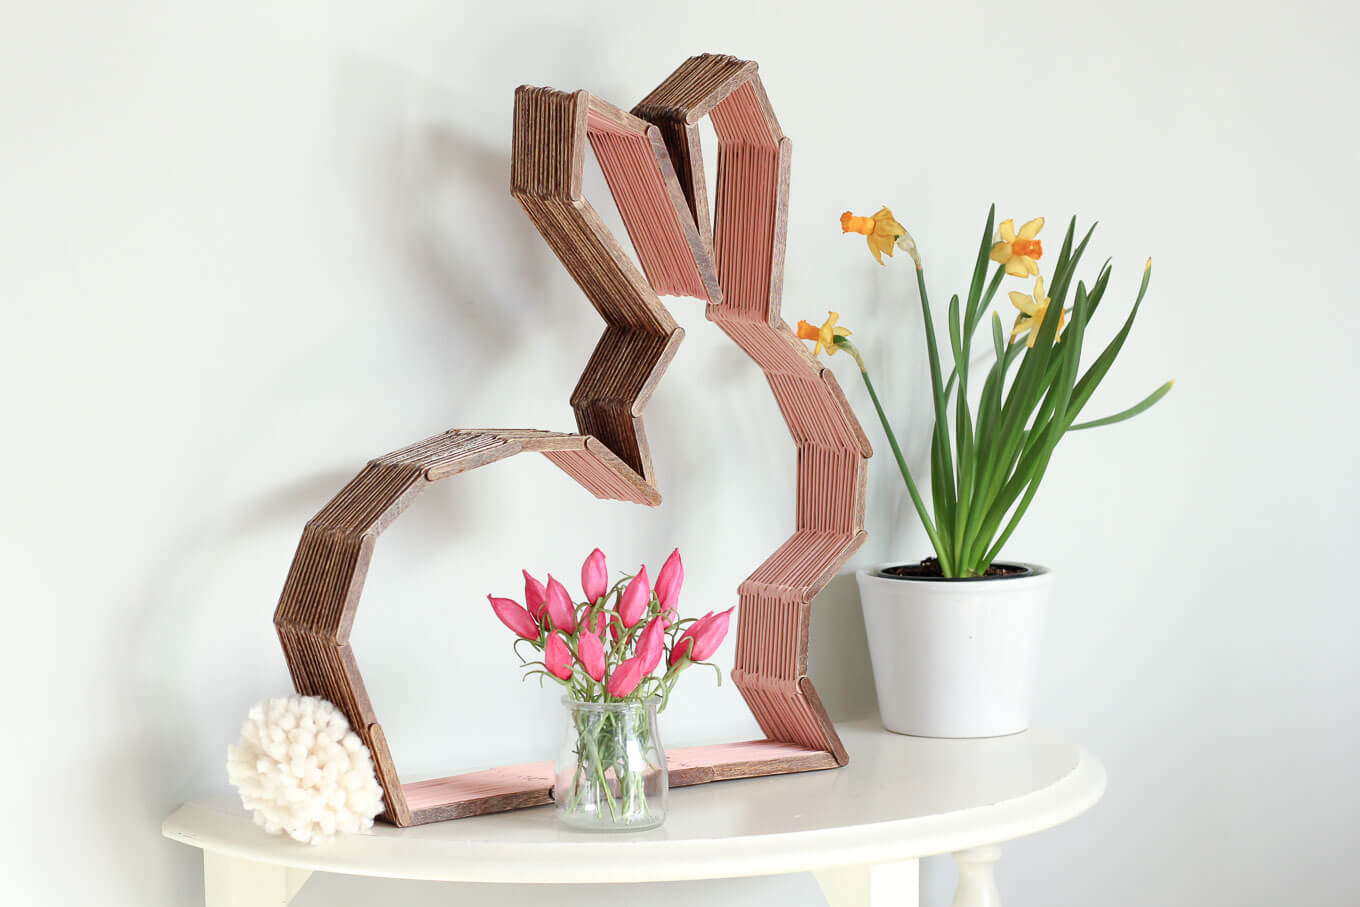 Diy modern bunny wall decor perfect for easter or a nursery for Diy easter decorations for the home